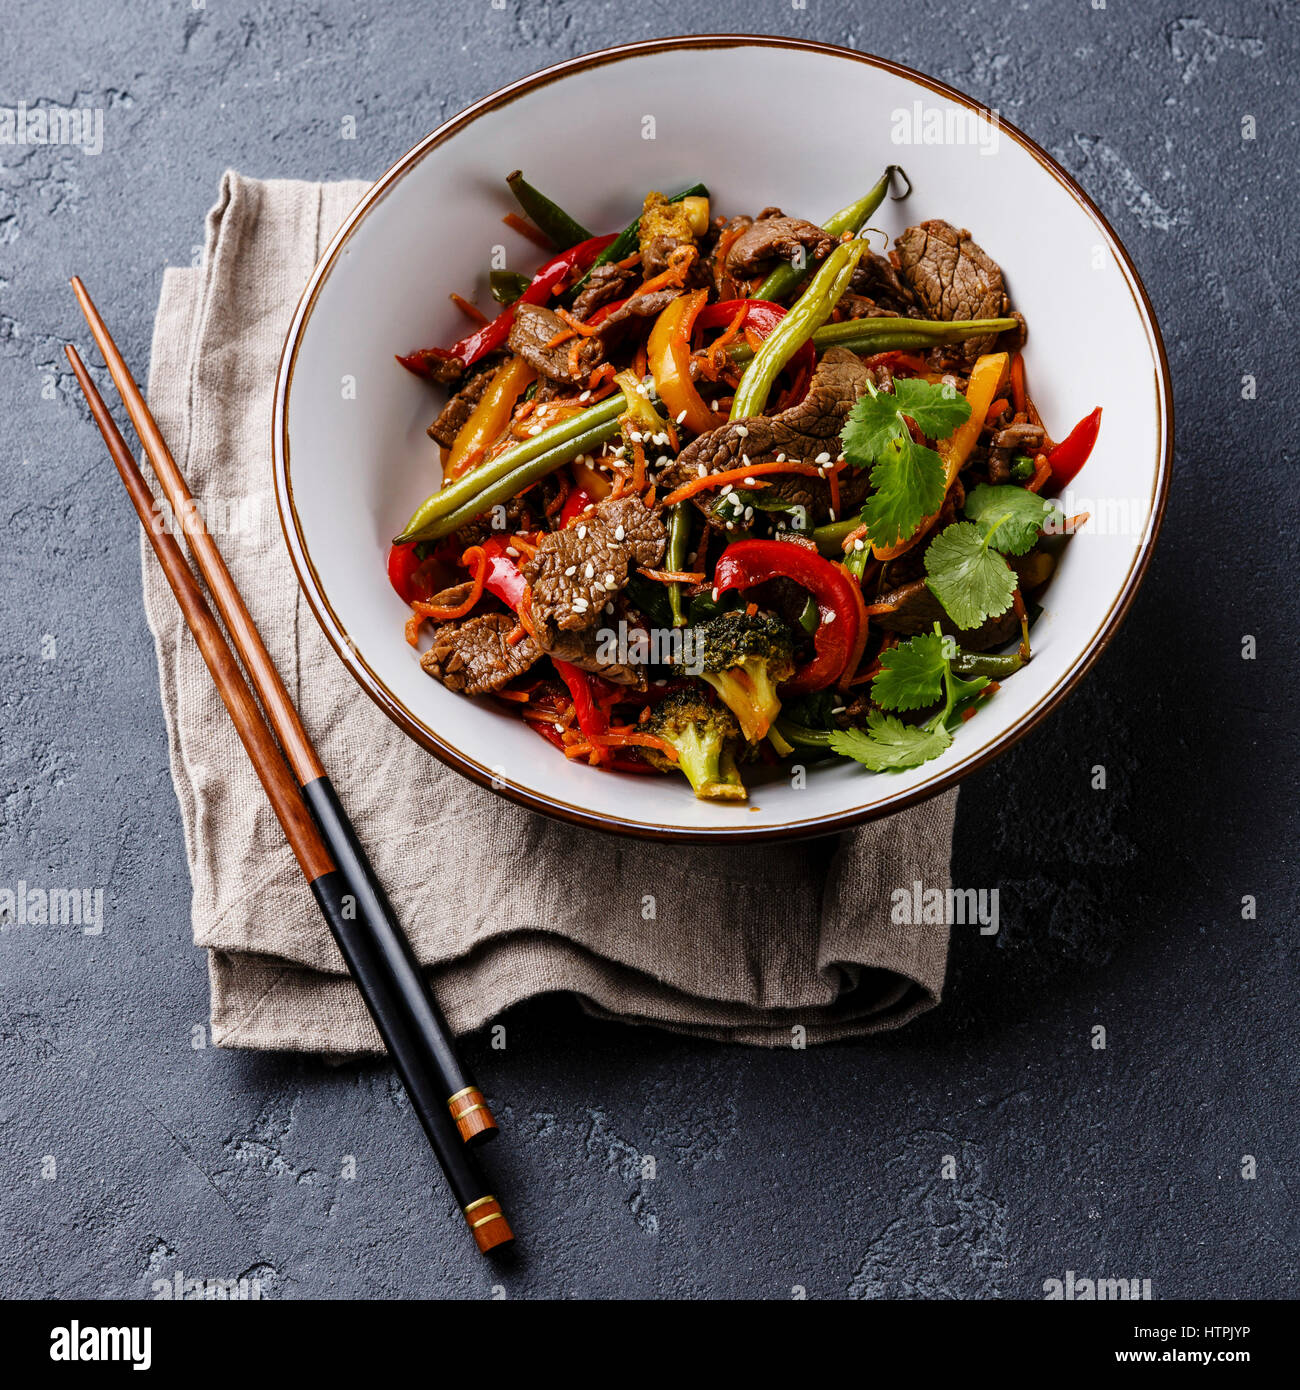 Szechuan beef stir fry with vegetables in bowl on dark stone background - Stock Image